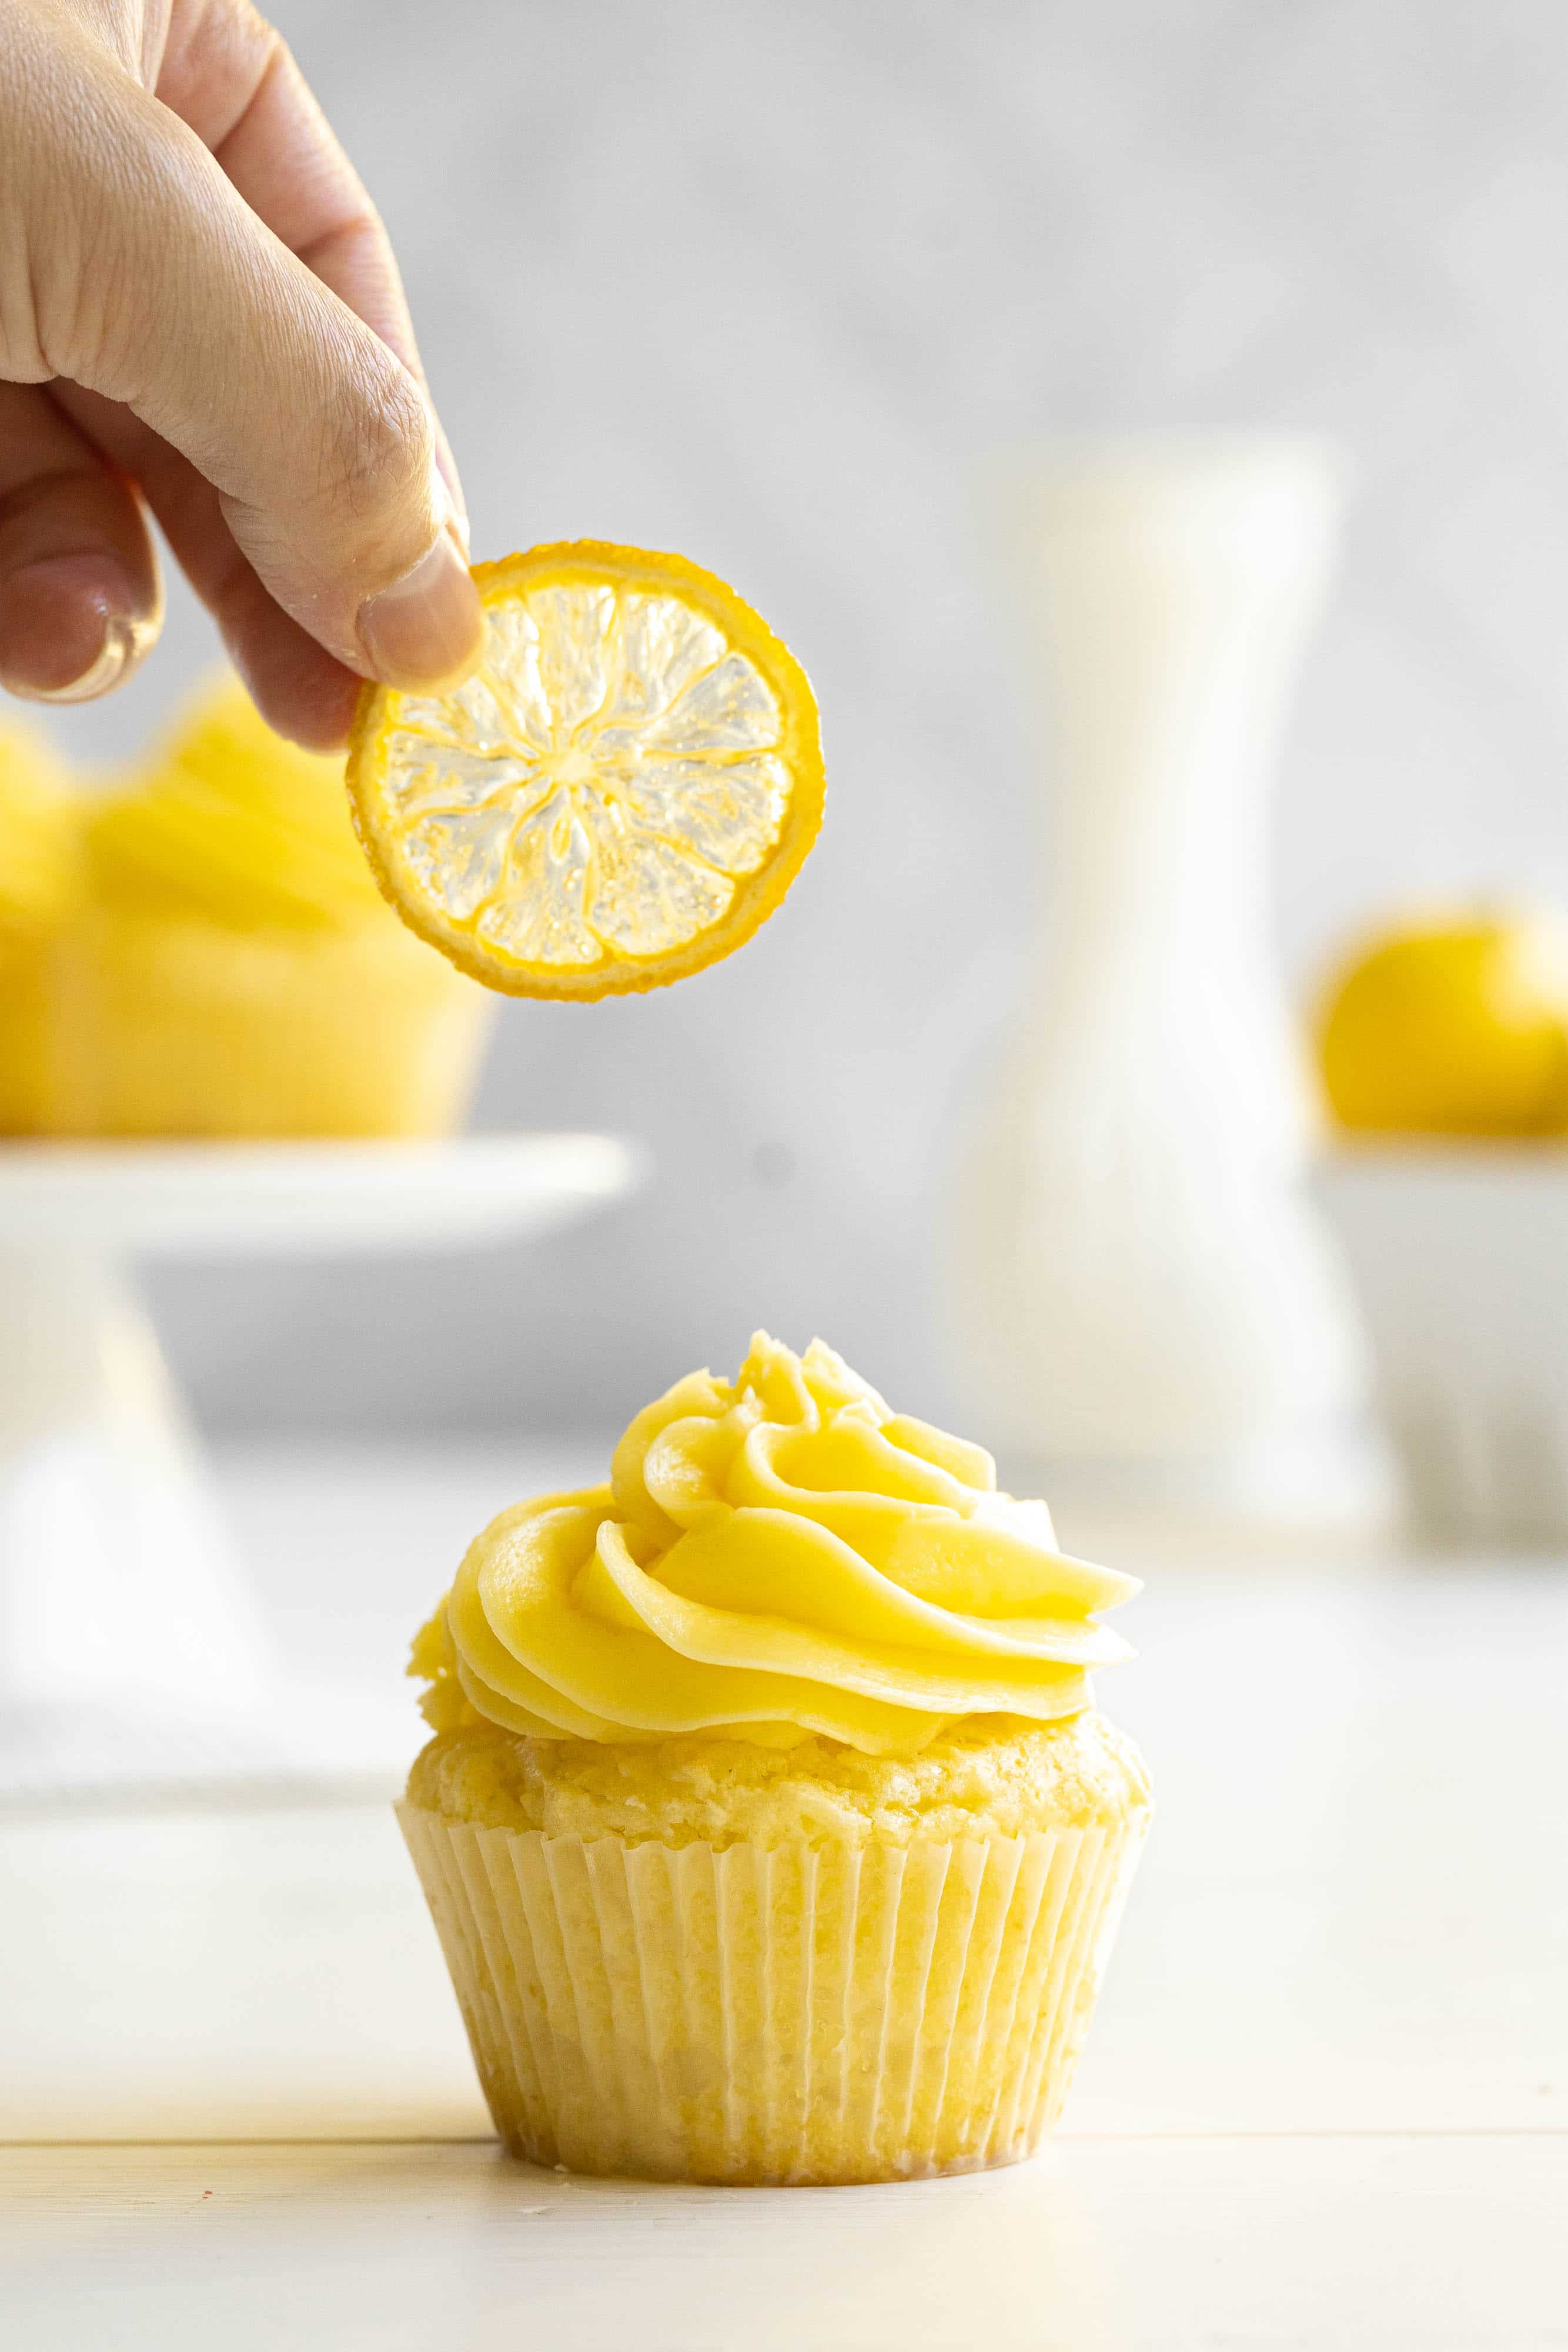 A hand placing a candied lemon slice on a cupcake